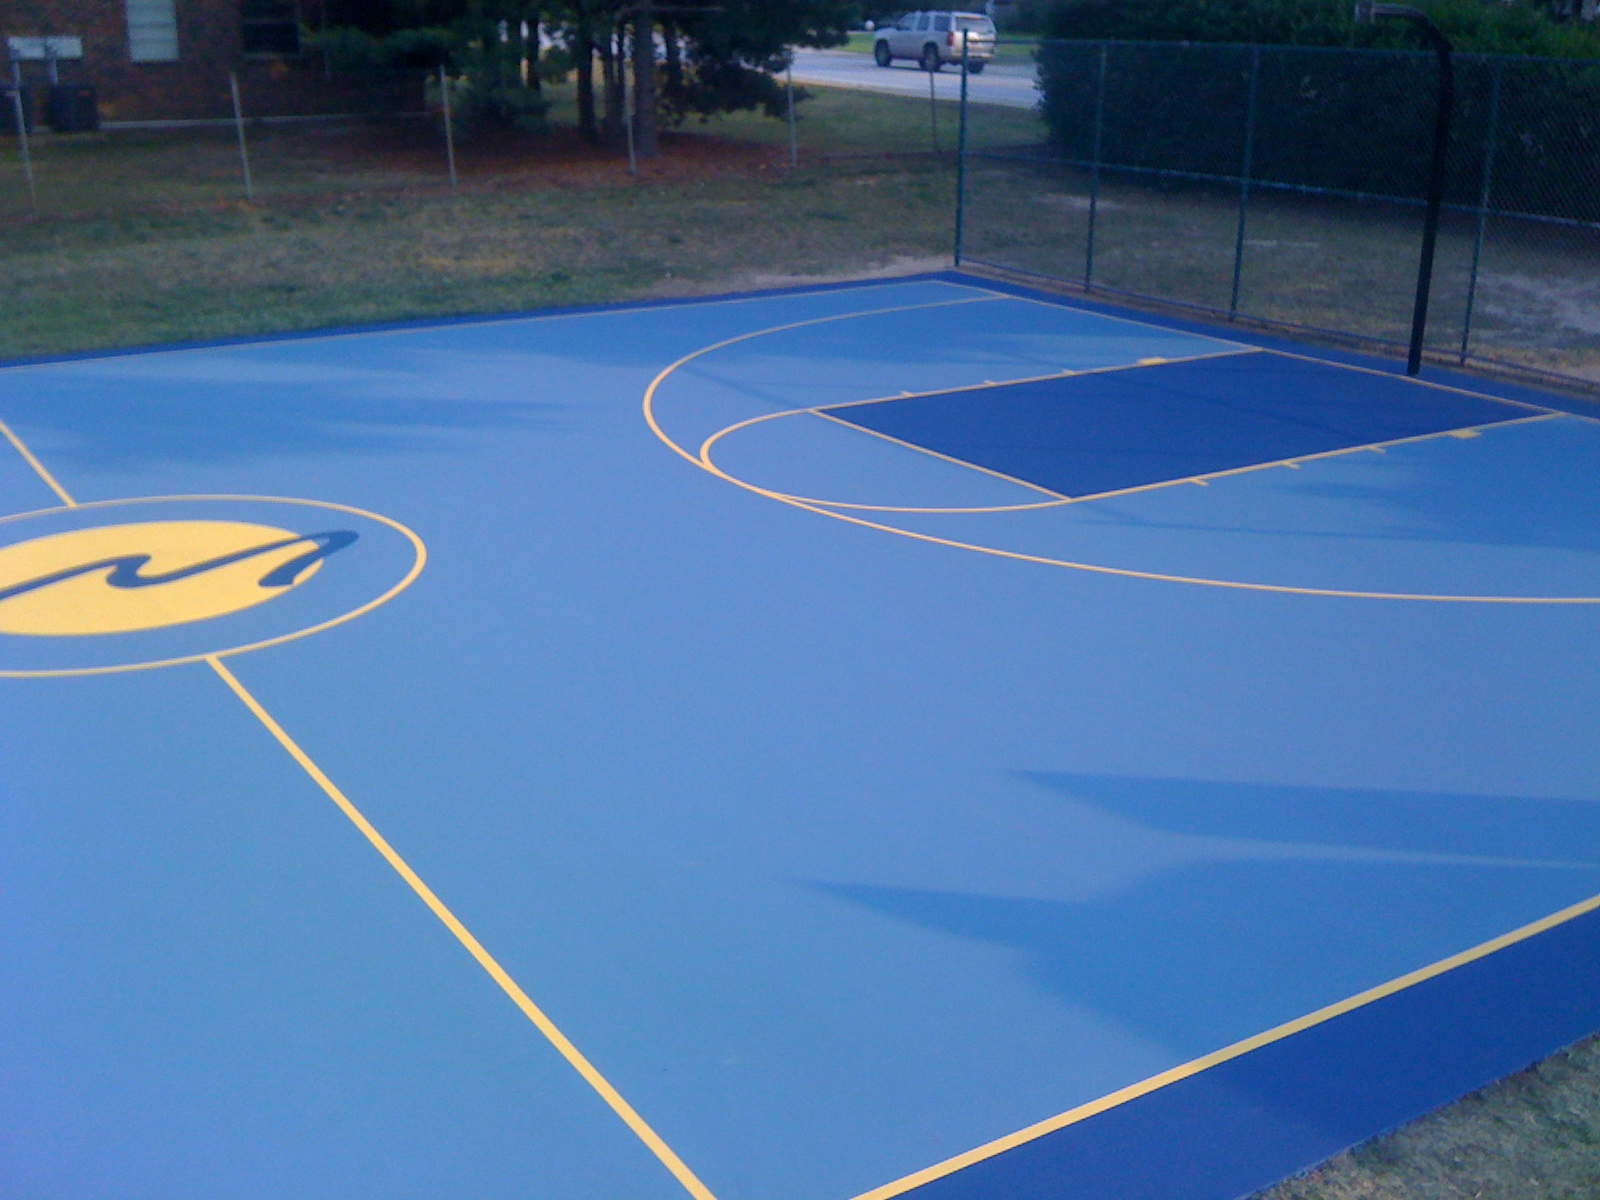 Ace surfaces north america inc video image gallery for Custom basketball court cost